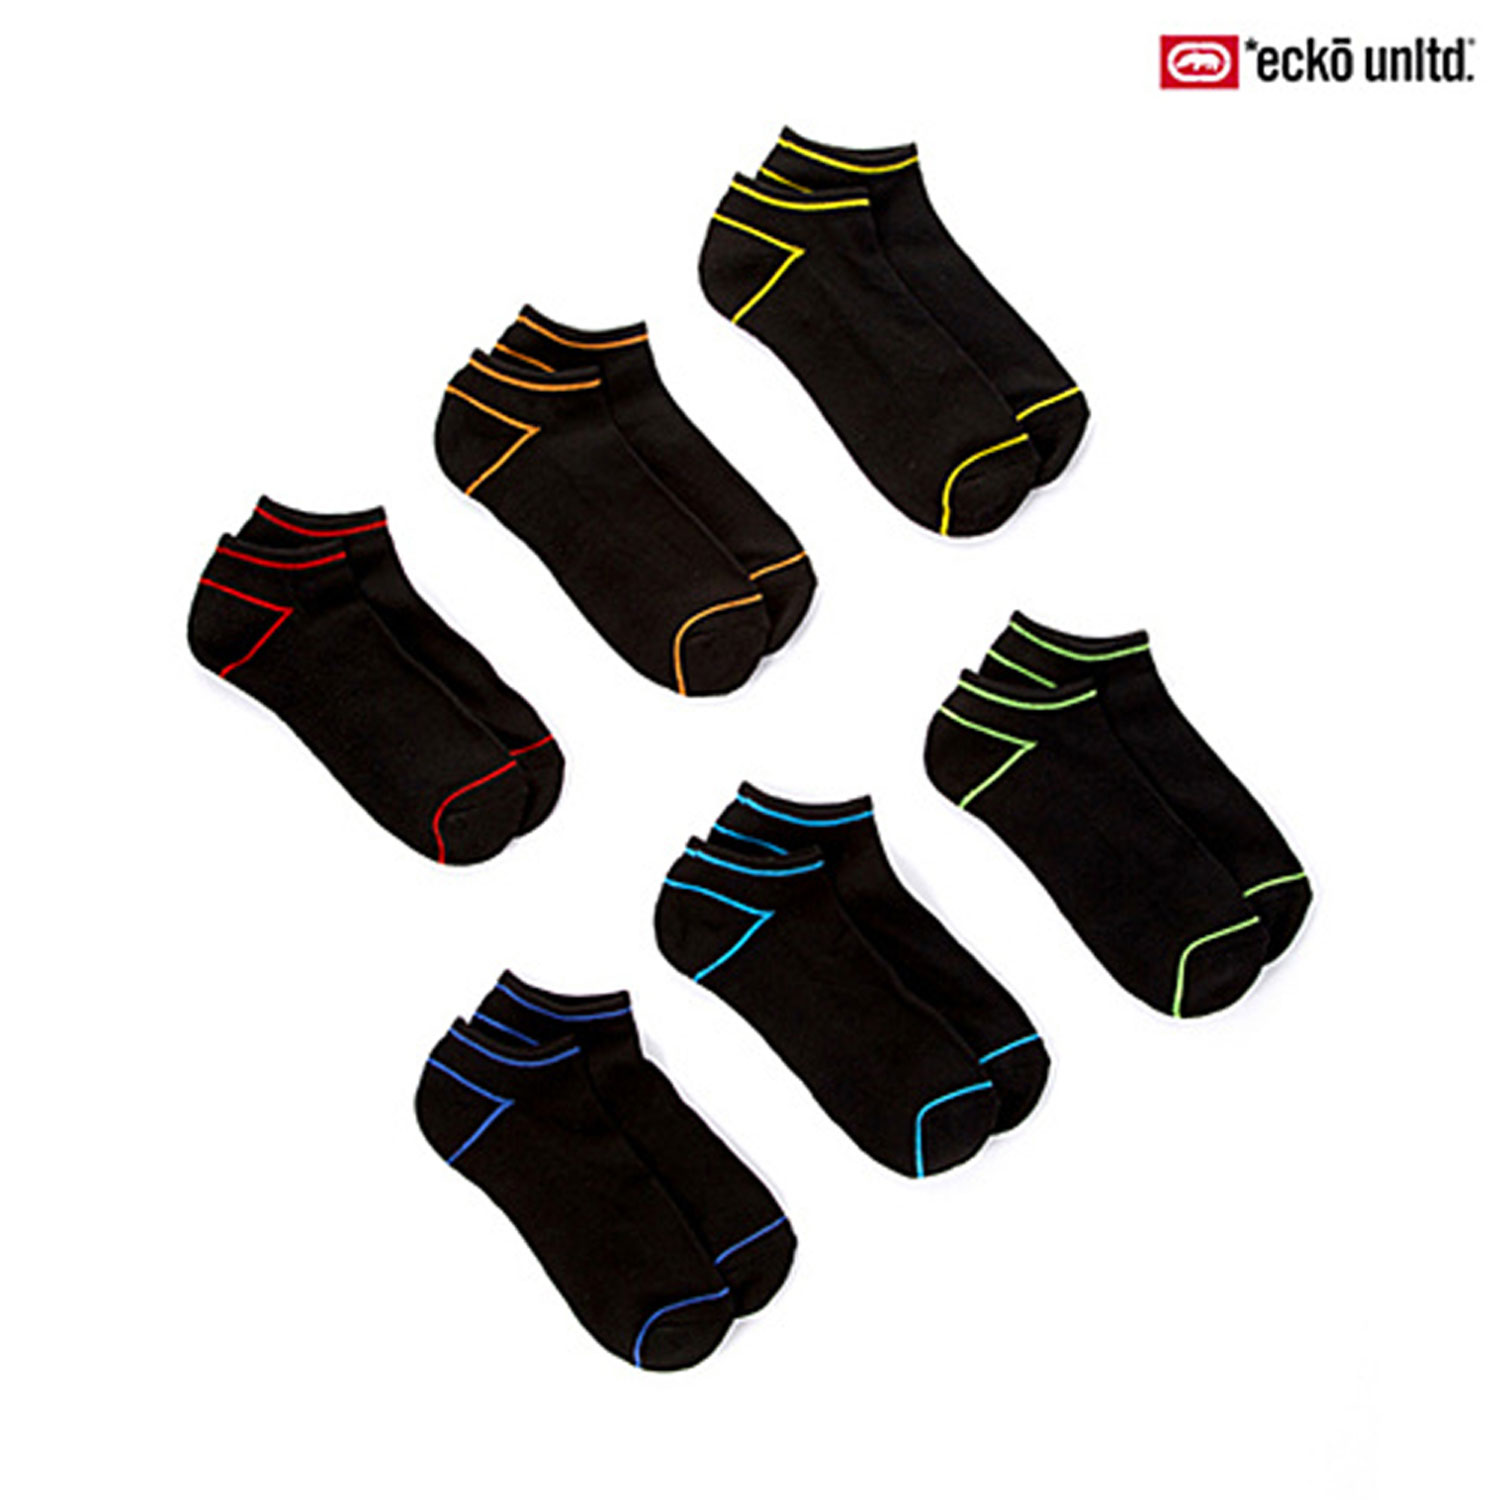 Ecko Unlimited No-Show Cushioned Sole Socks